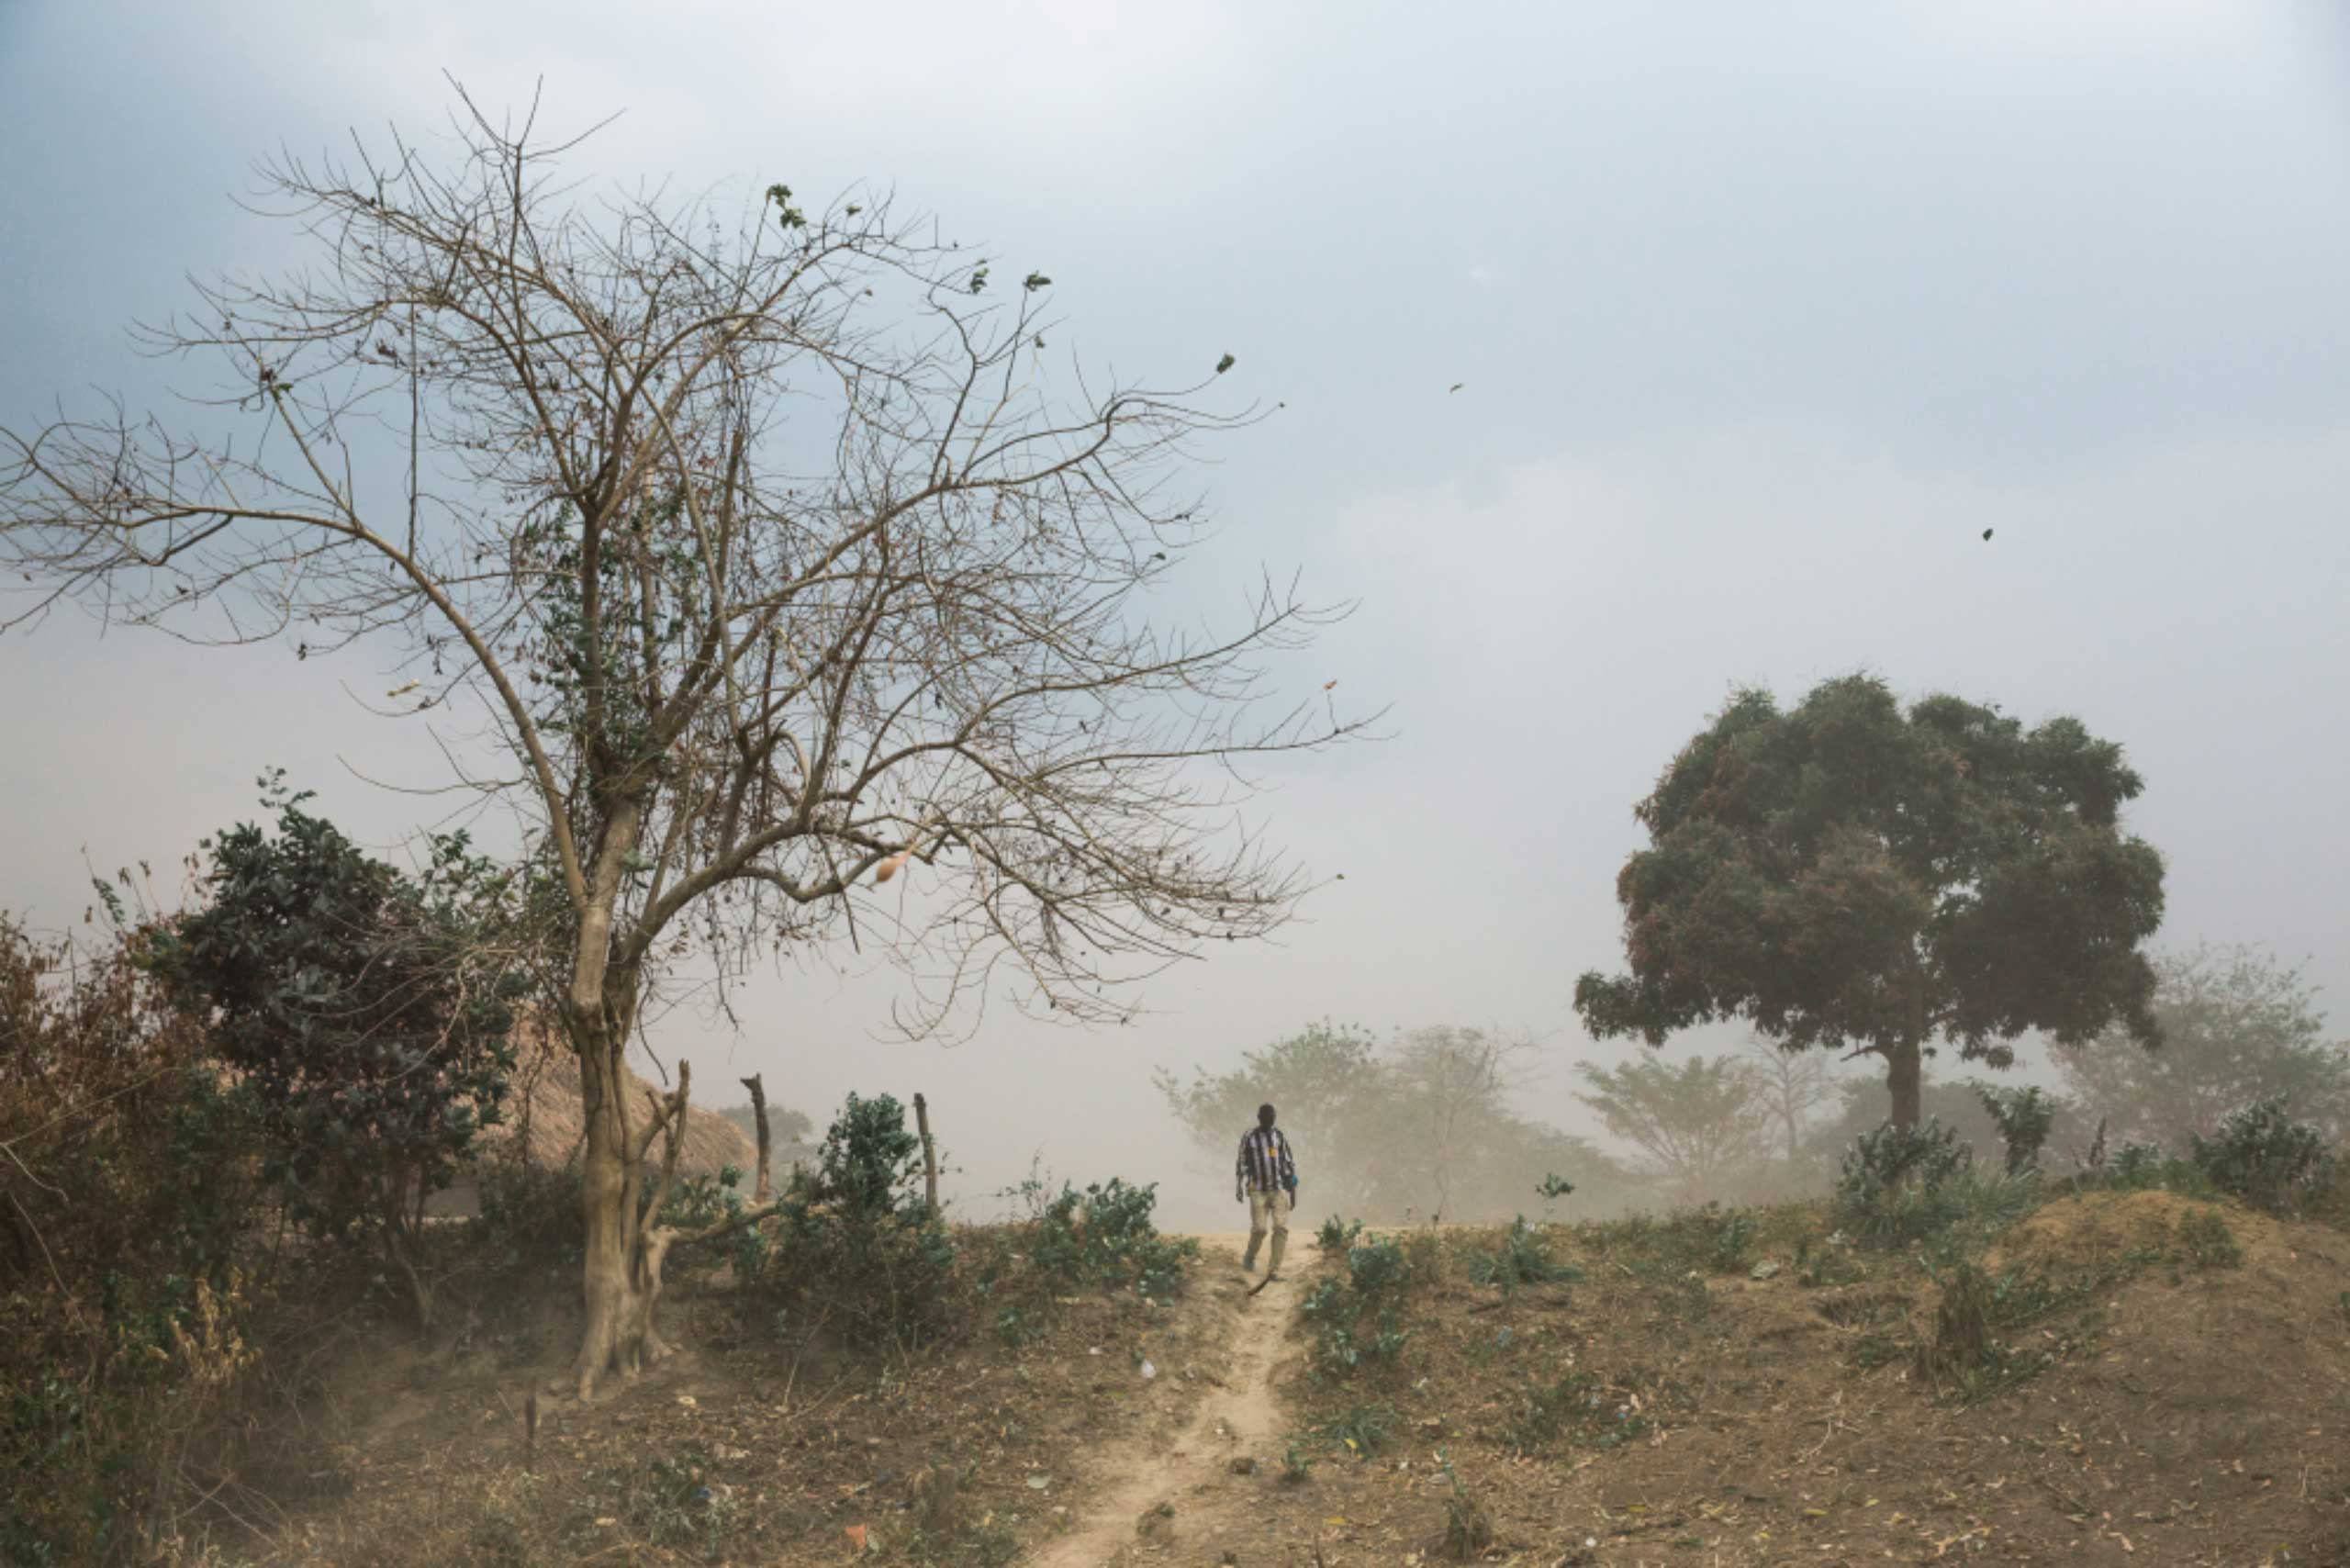 A man walks on a path outside the village of Zawara, situated on the Oubangui River about 24 miles east of Bangui, Central African Republic. Though relatively close to the capital, Zawara is nonetheless isolated due to a lack of roads and transport options.